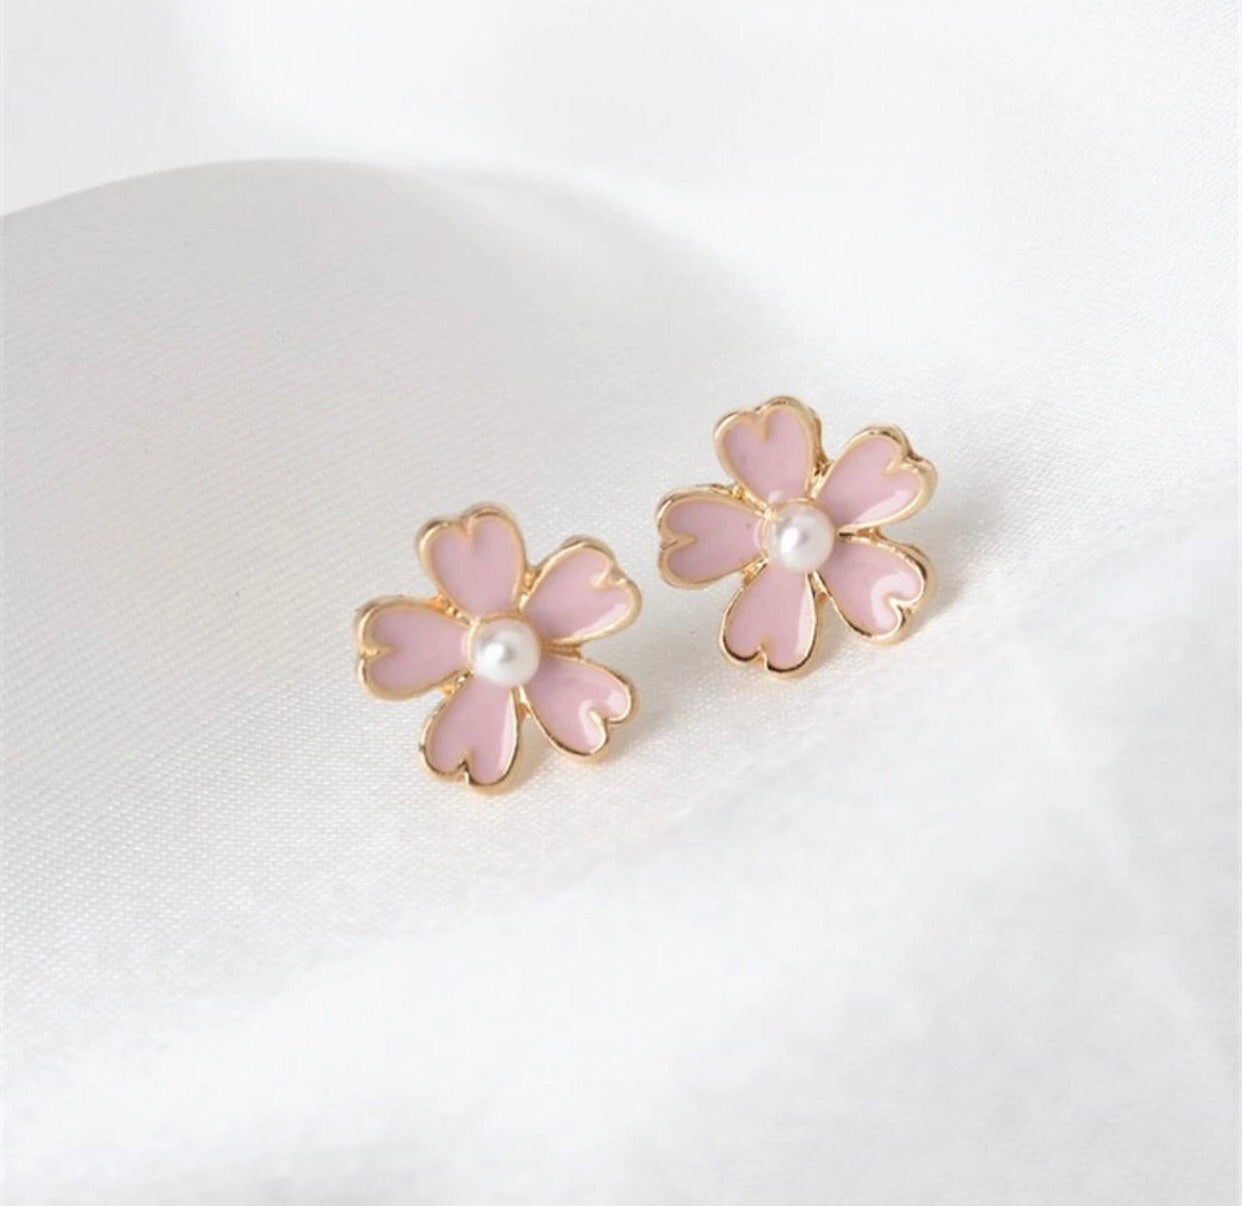 Light pink flower with pearl stud earrings - Classy Pink Boutique